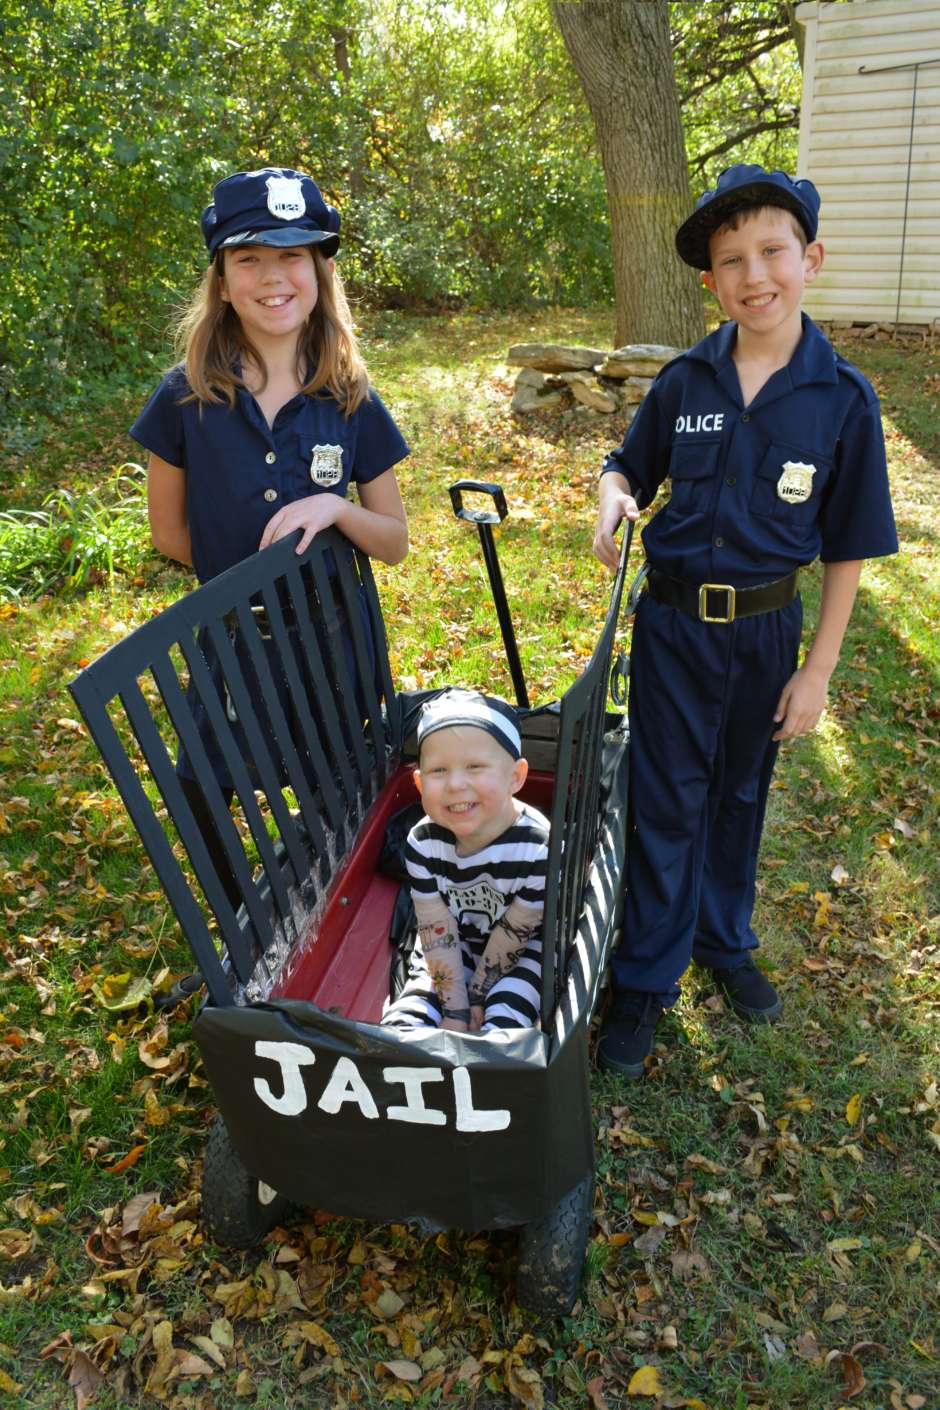 Cops And Robber Costume